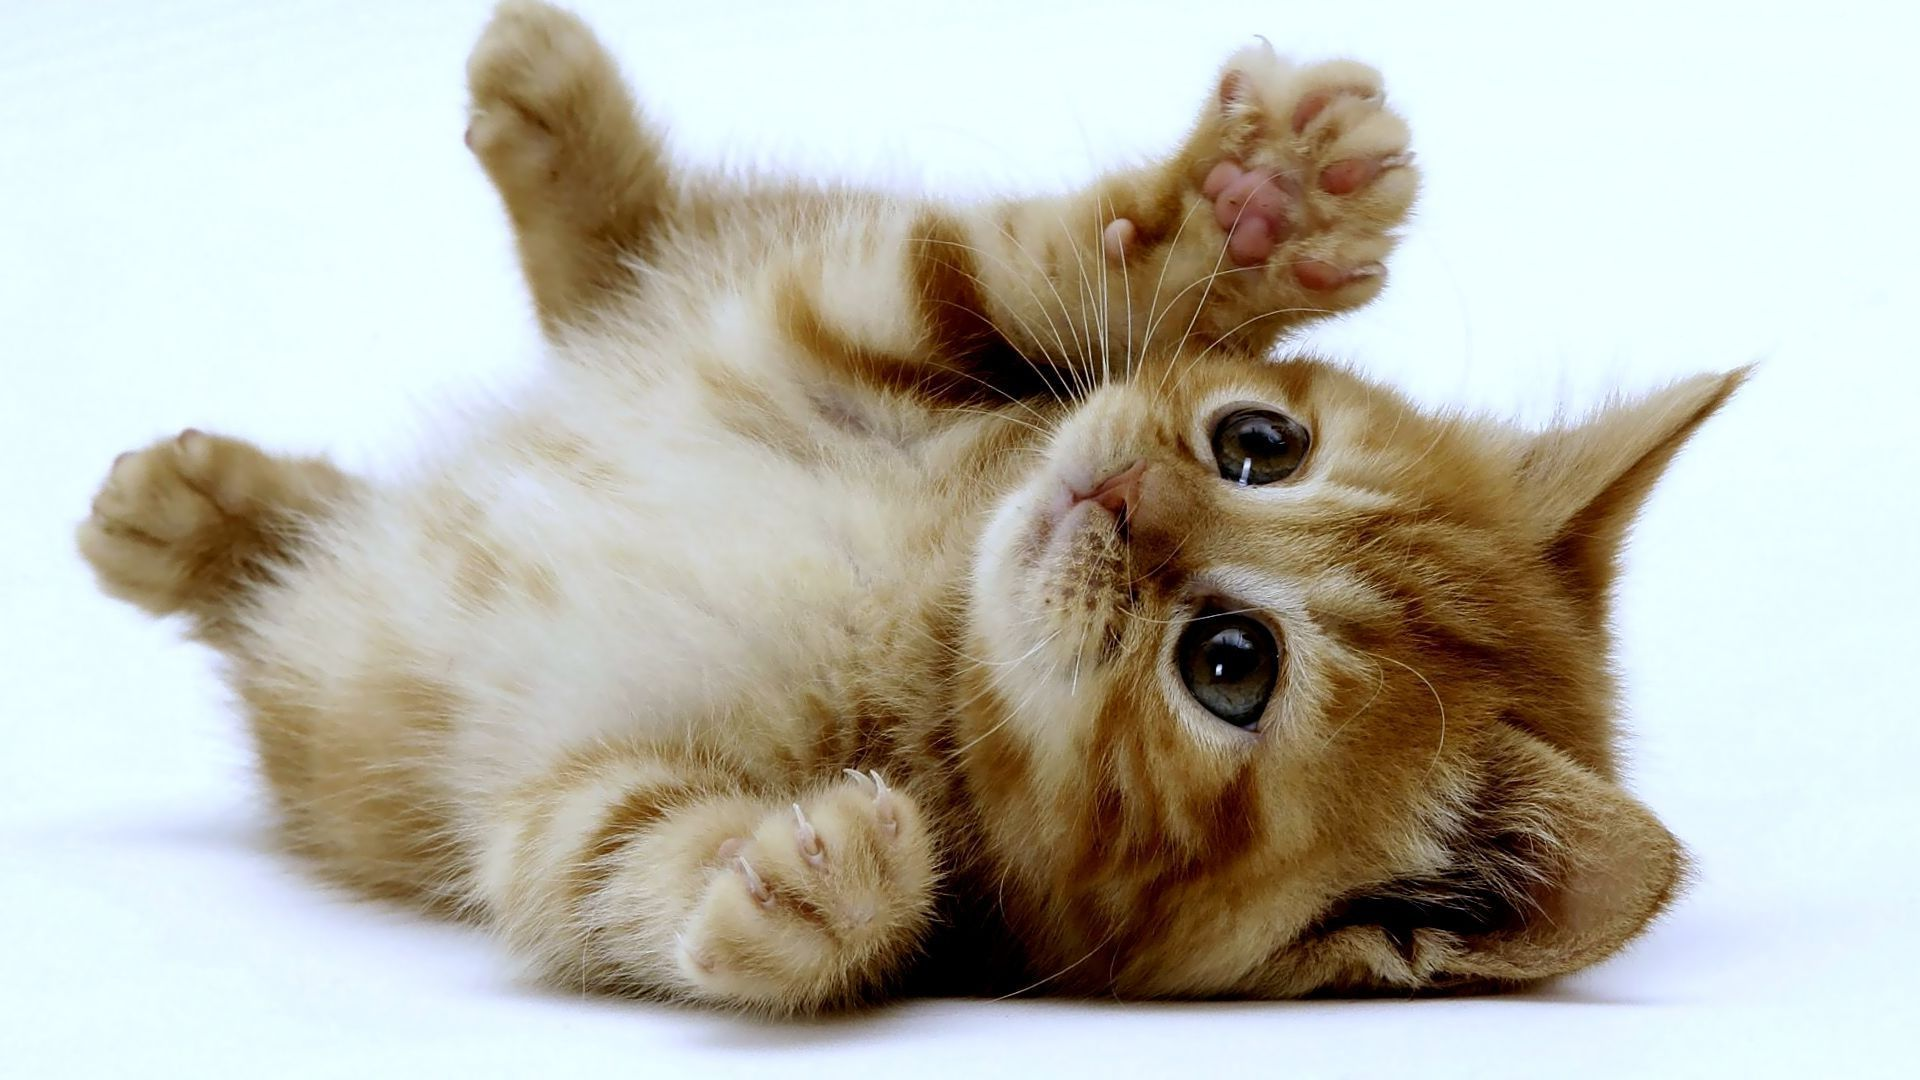 Cute Kittens4 Jpg 1920 1080 Kittens Cutest Kitten Wallpaper Cute Kittens Images